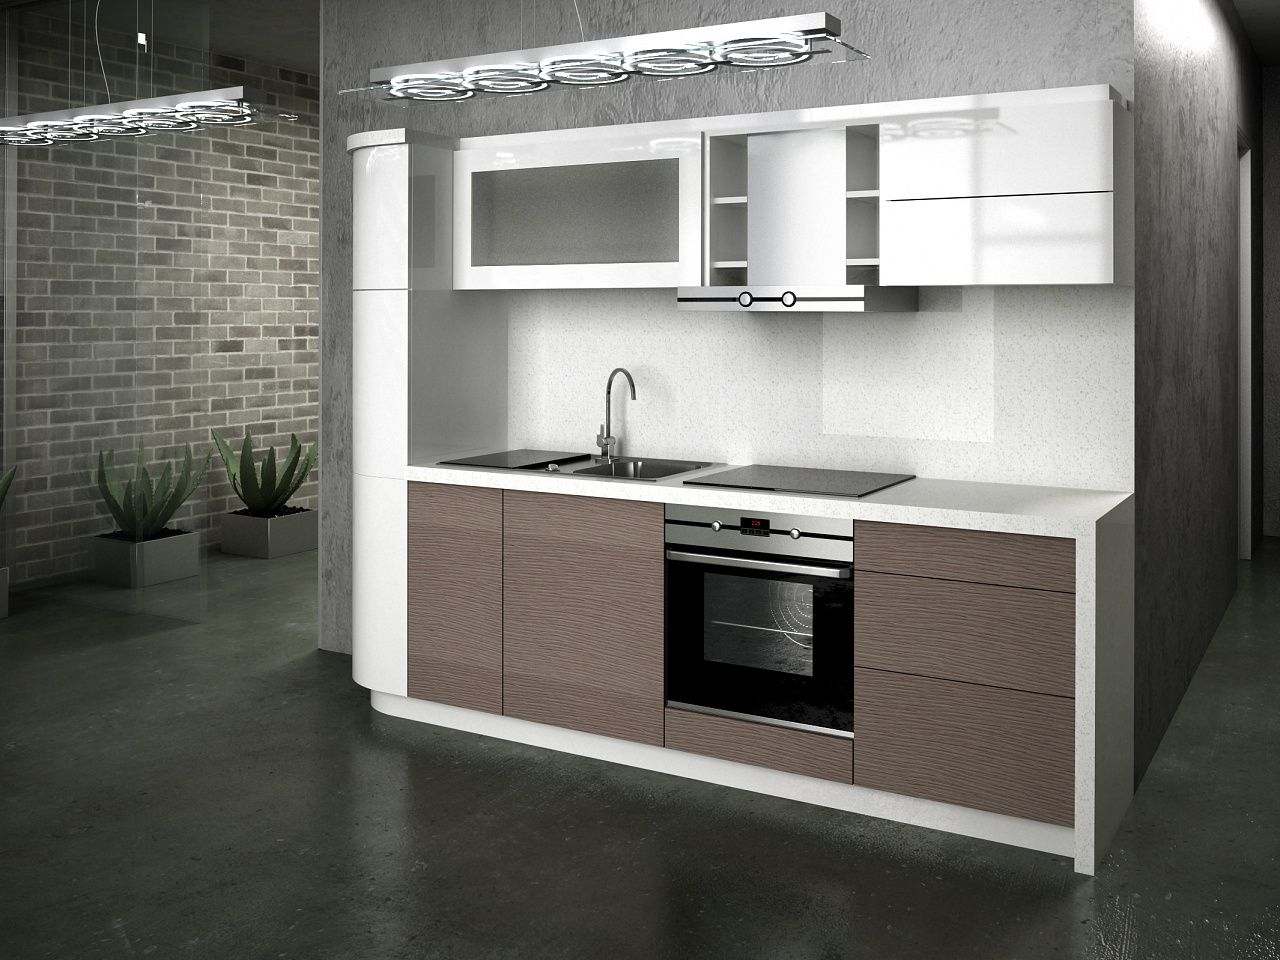 KitchenStriking Minimalist Kitchen Unit With Dark Tones And Exposed Brick Wall Gorgeous Compact Units For Your Inspirations Design